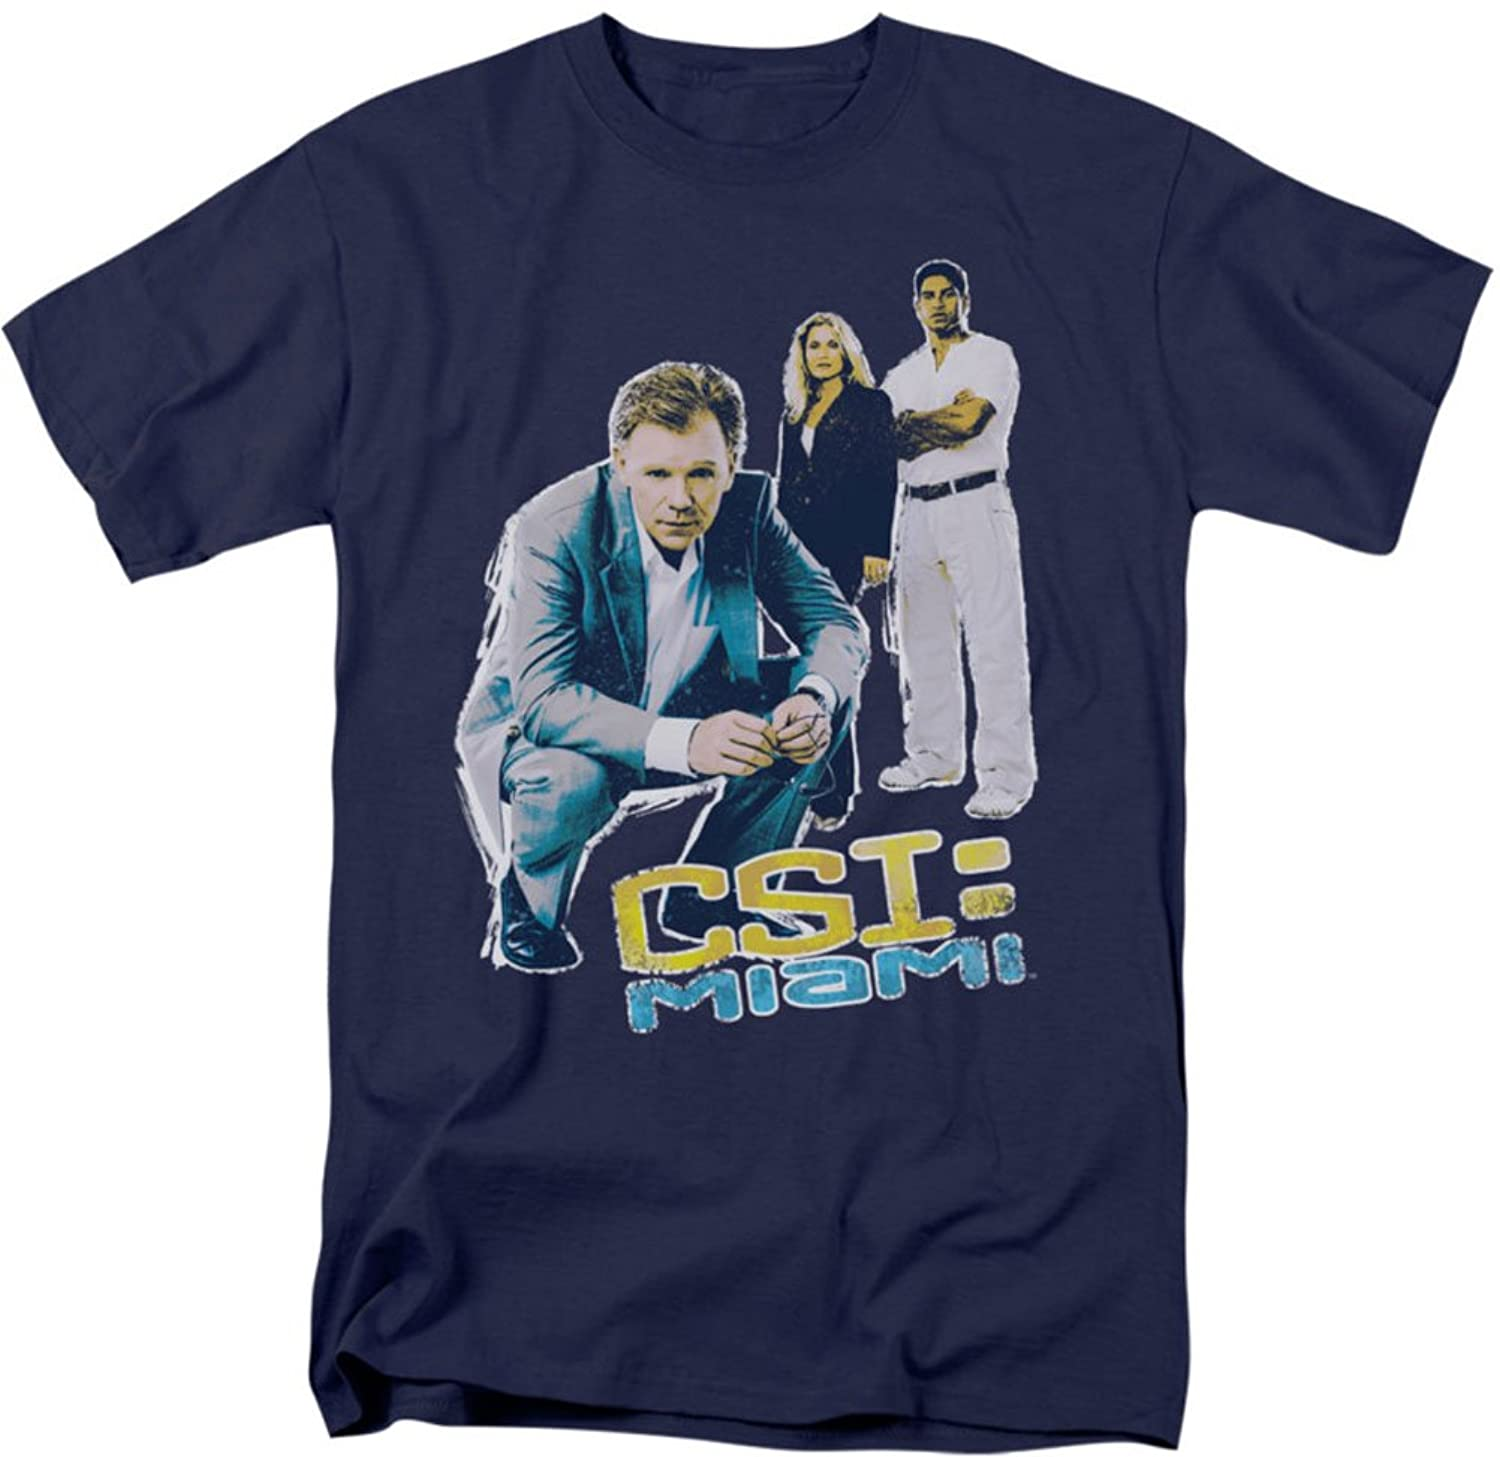 Csi: Miami - Mens Perspective T-Shirt In Navy